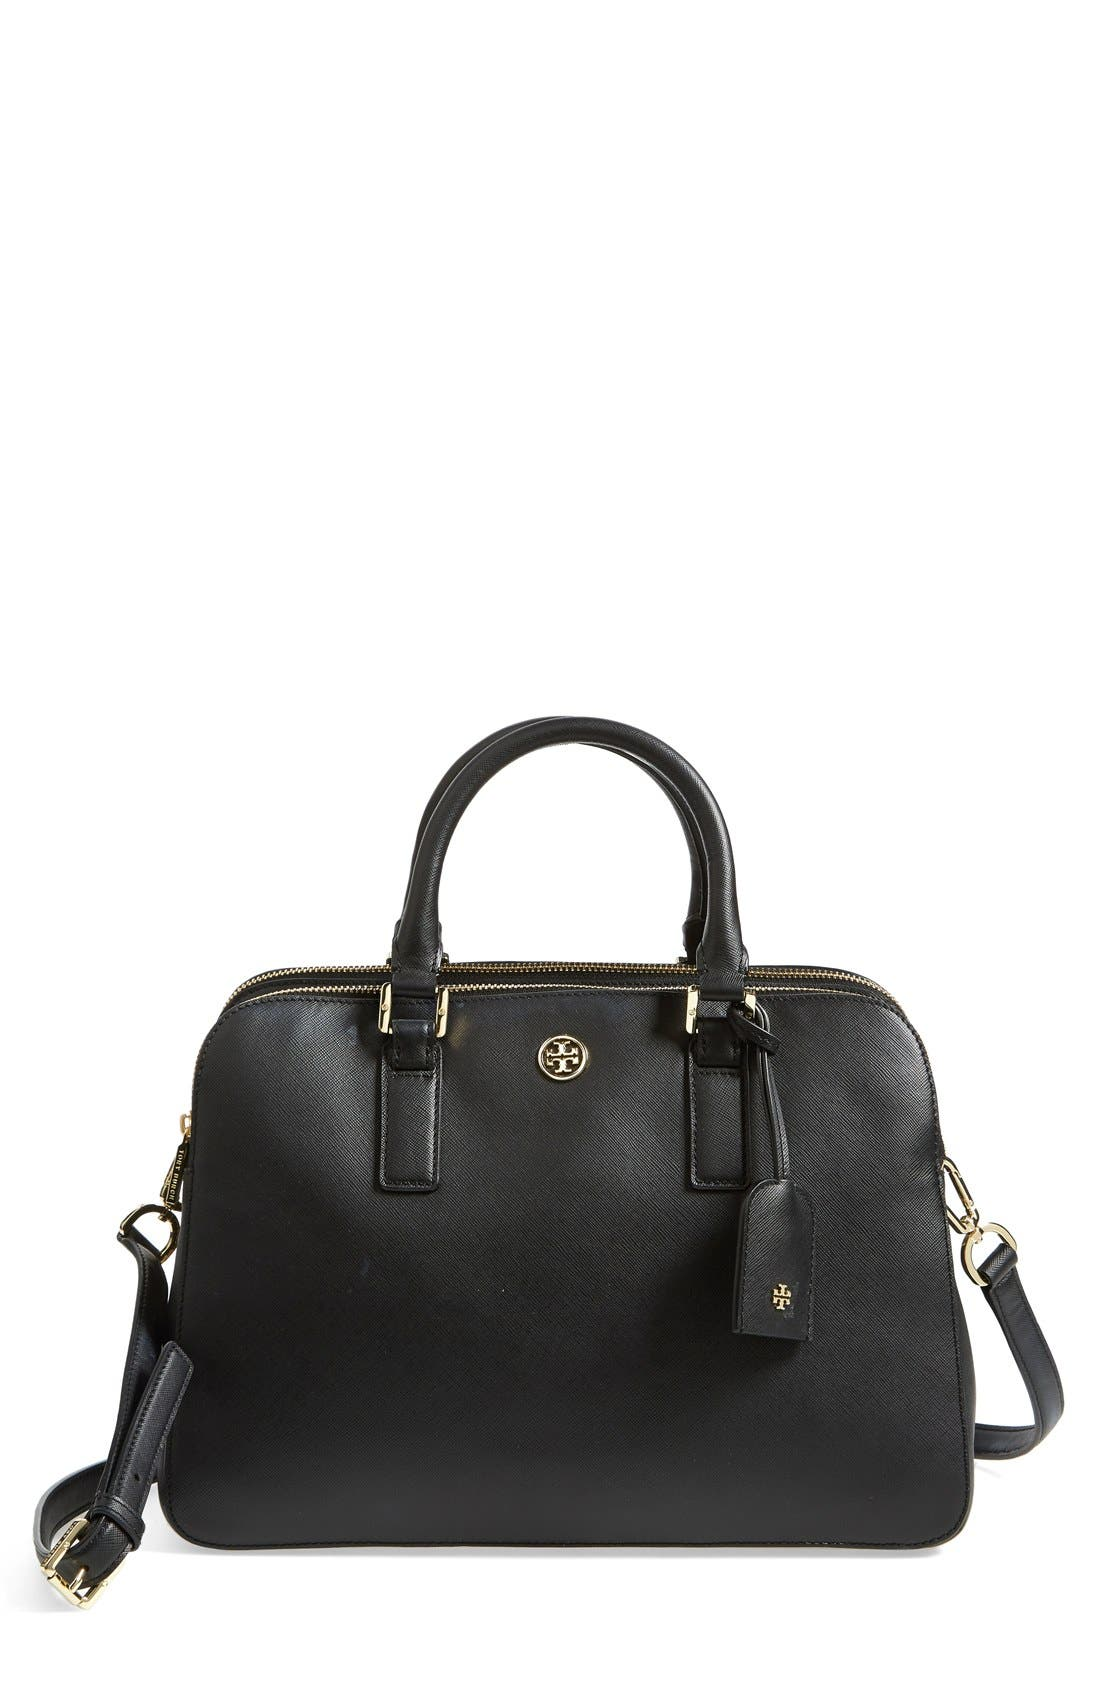 'Robinson' Triple Zip Saffiano Leather Satchel,                             Main thumbnail 1, color,                             Black